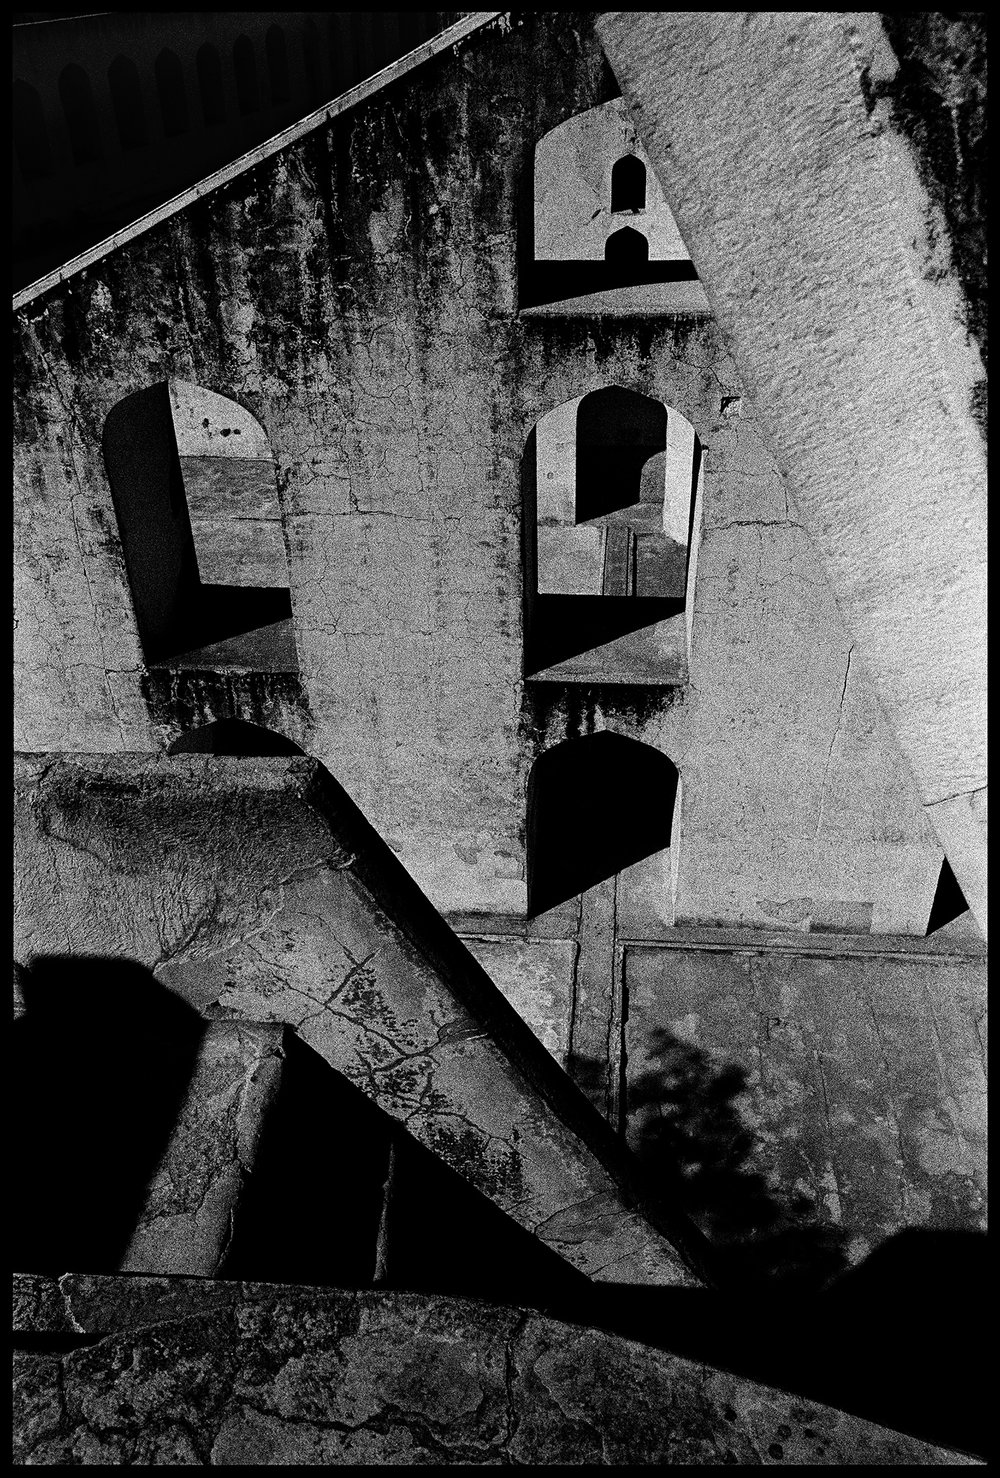 132_GALLERY_Jantar-Mantar-95_SURFACEMAG-SIMON-CHAPUT-PHOTOGRAPHY.jpg